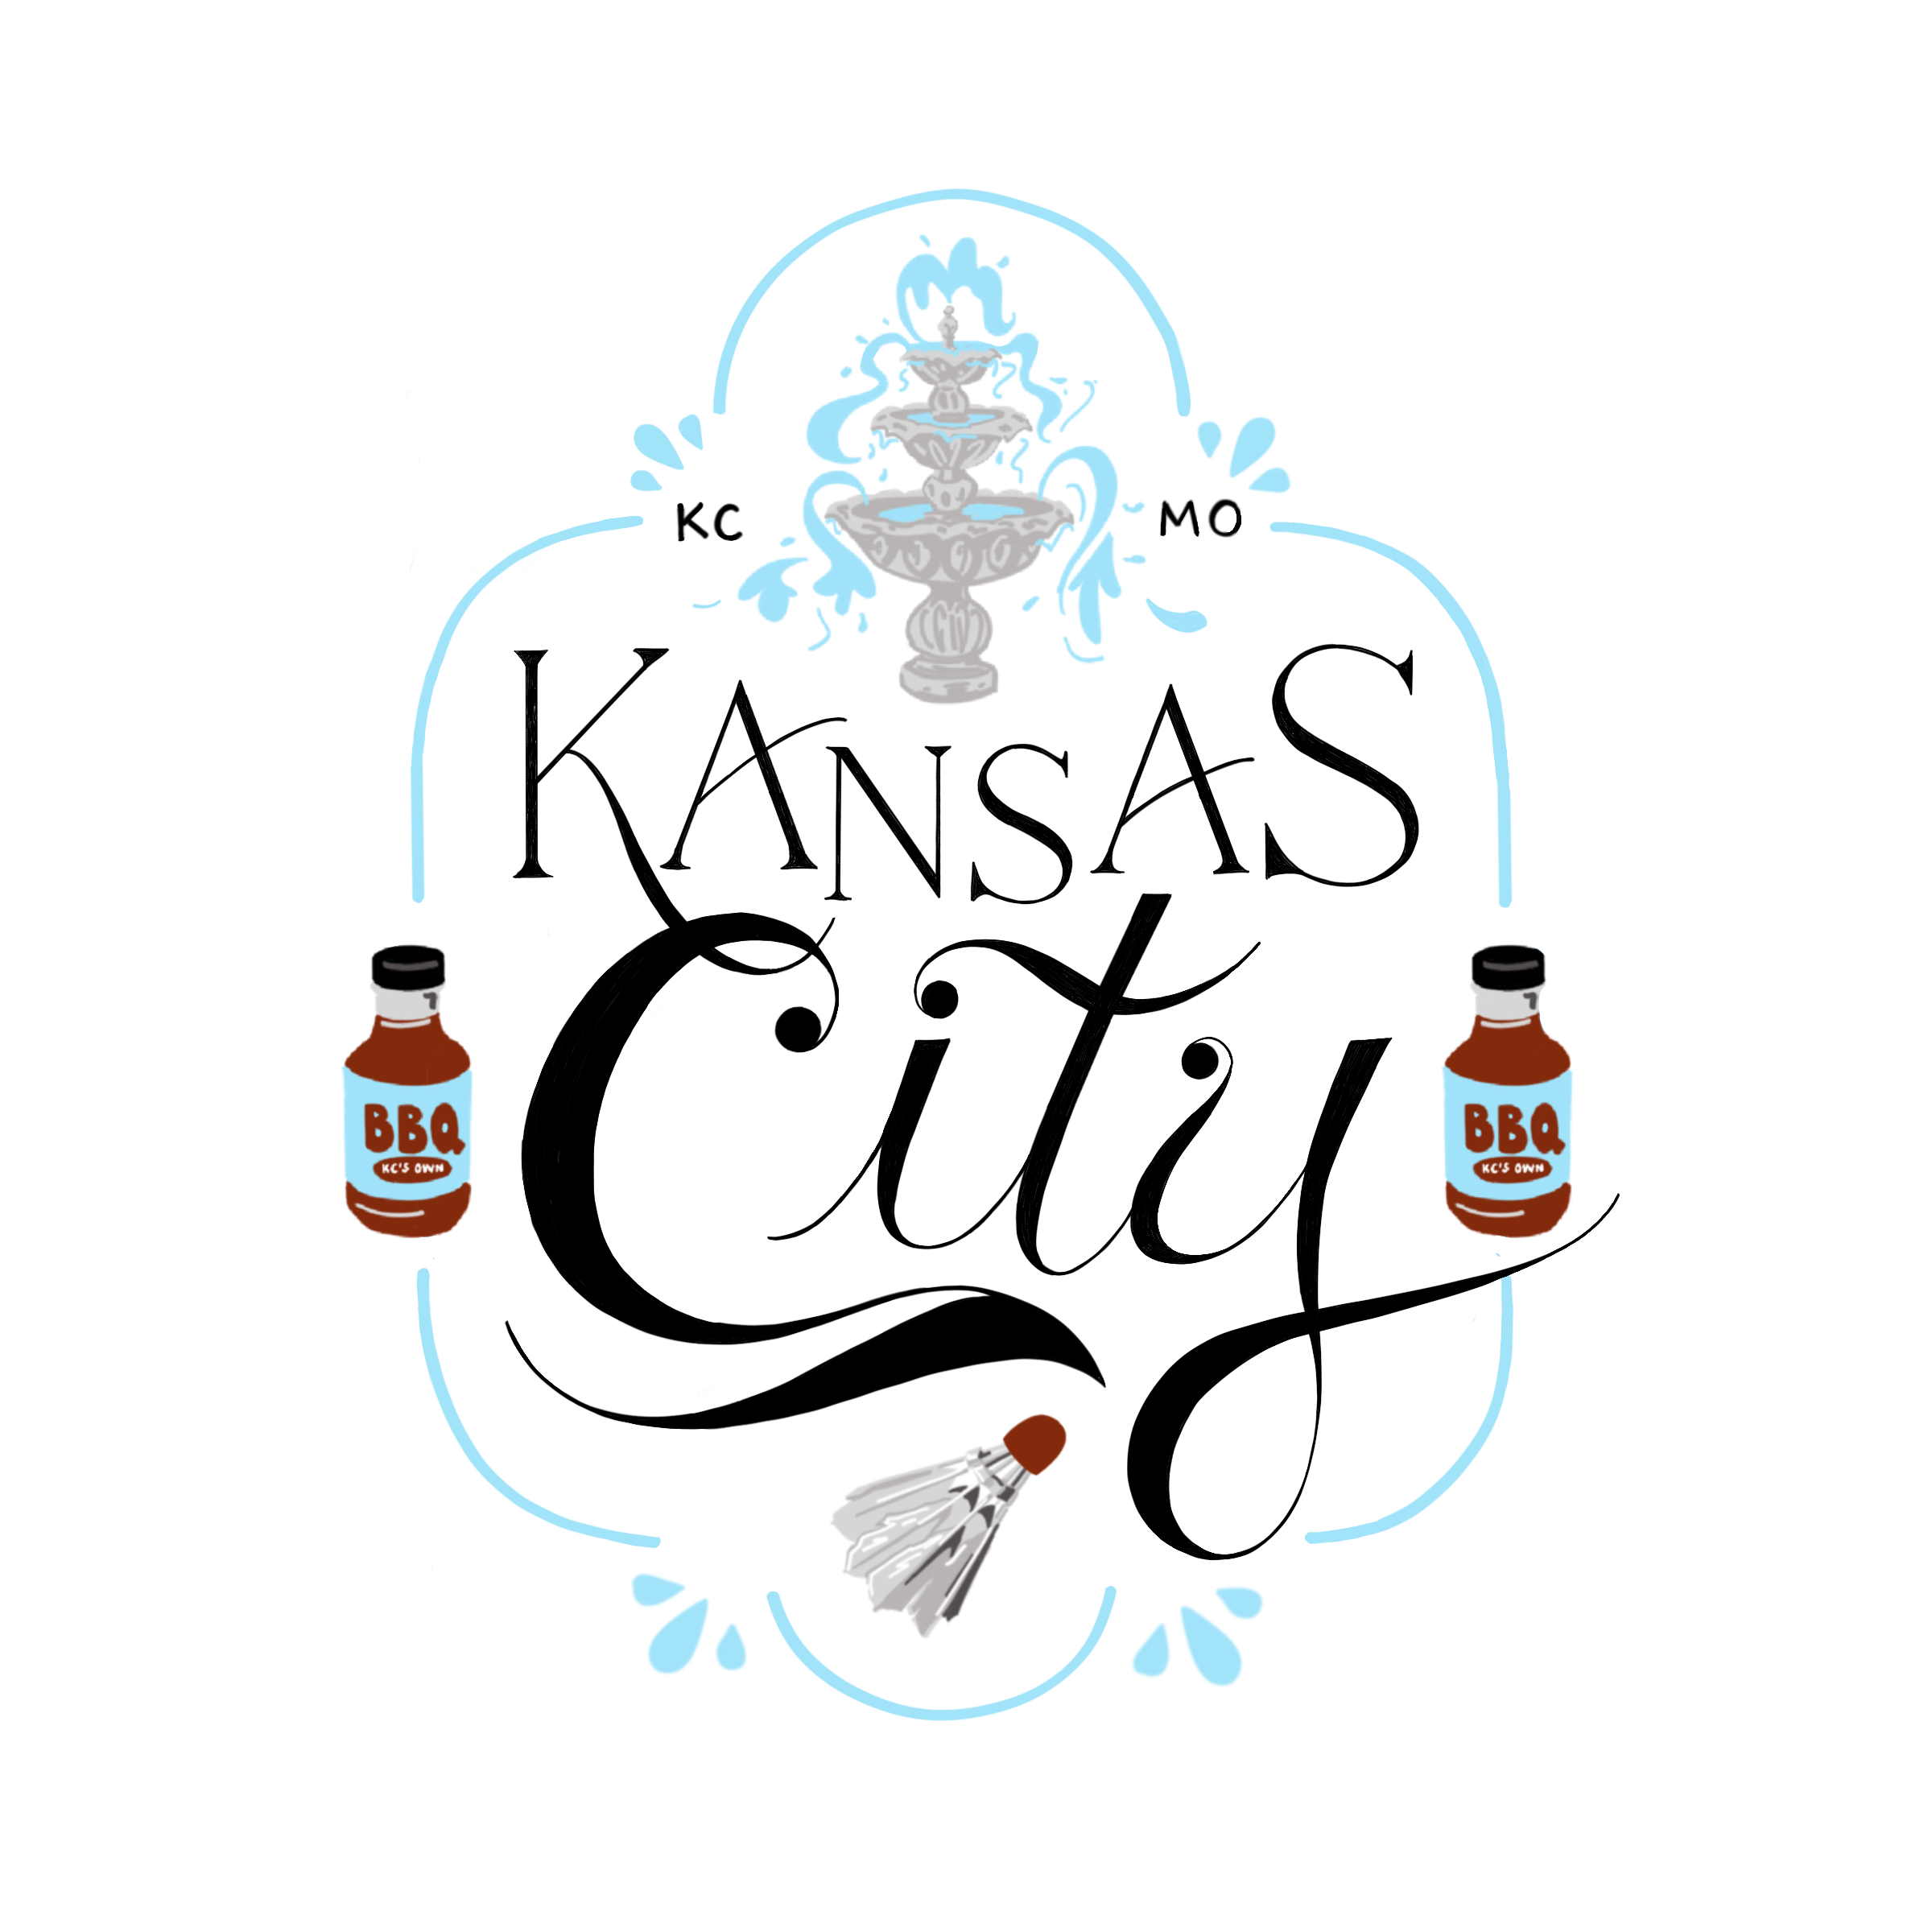 Kansas City graphic design - cohen illustration.png